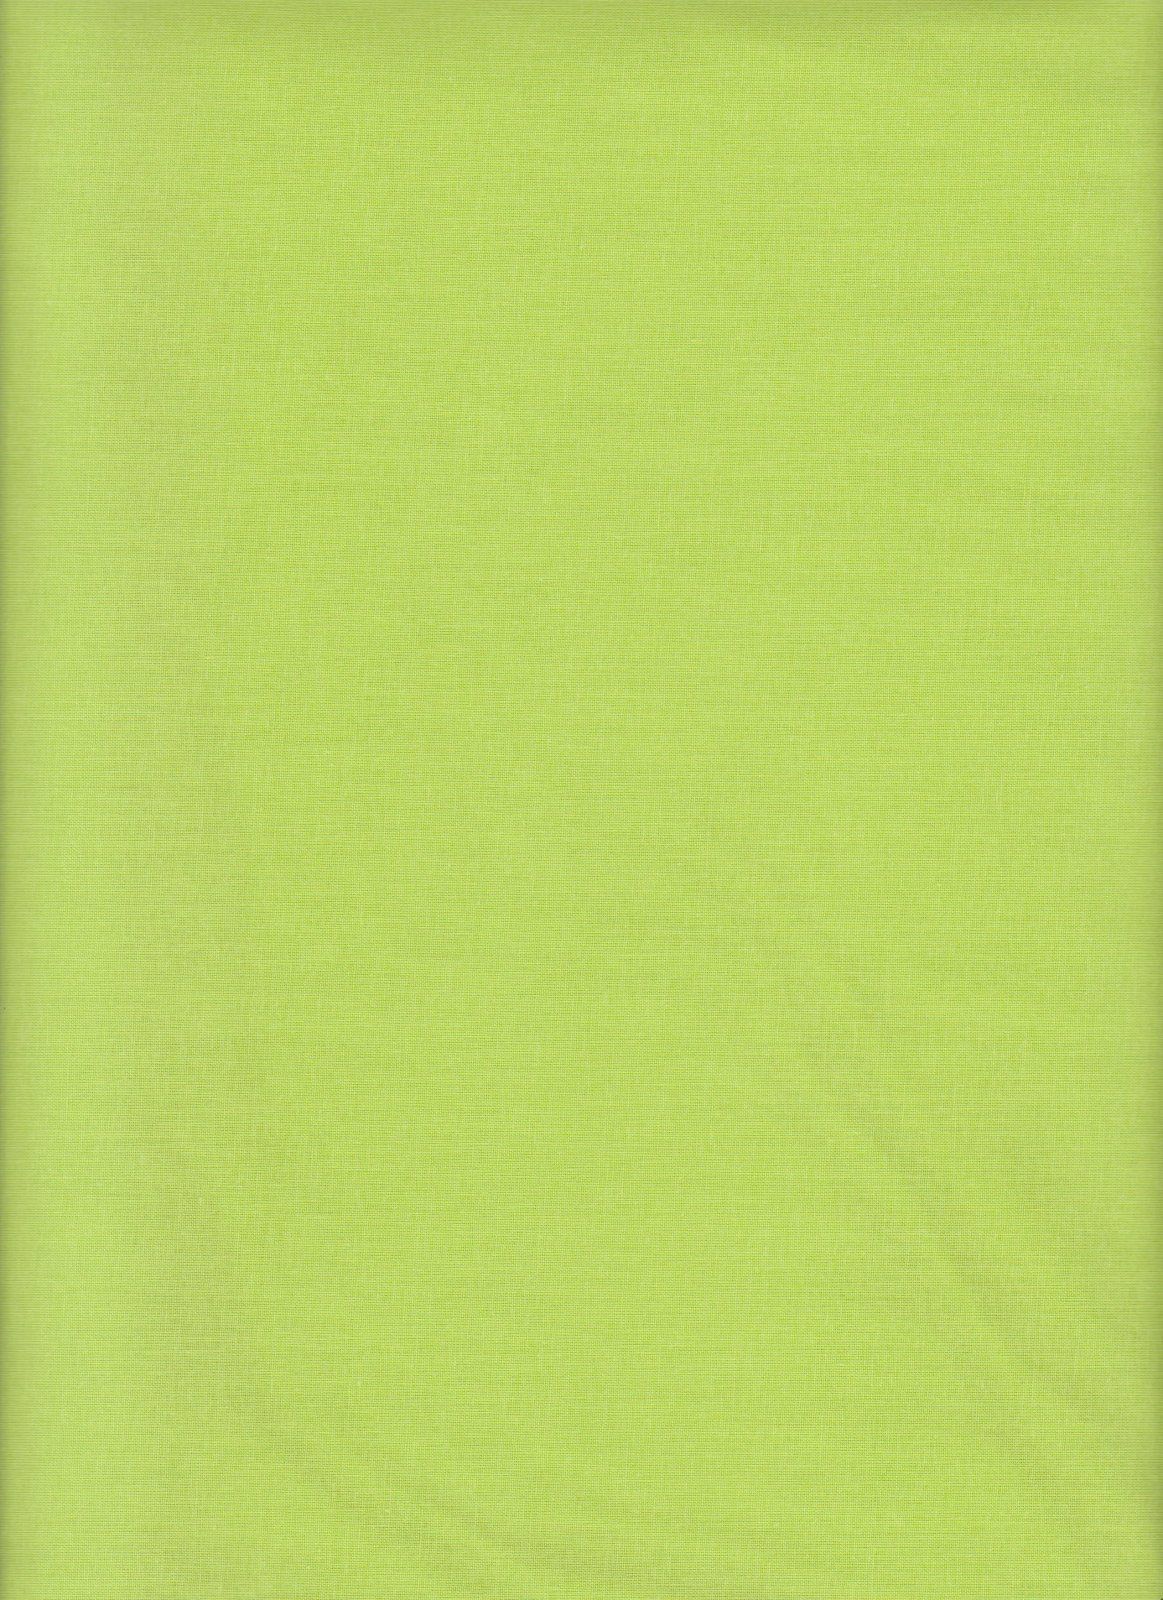 Americana Solids 62374D Lime